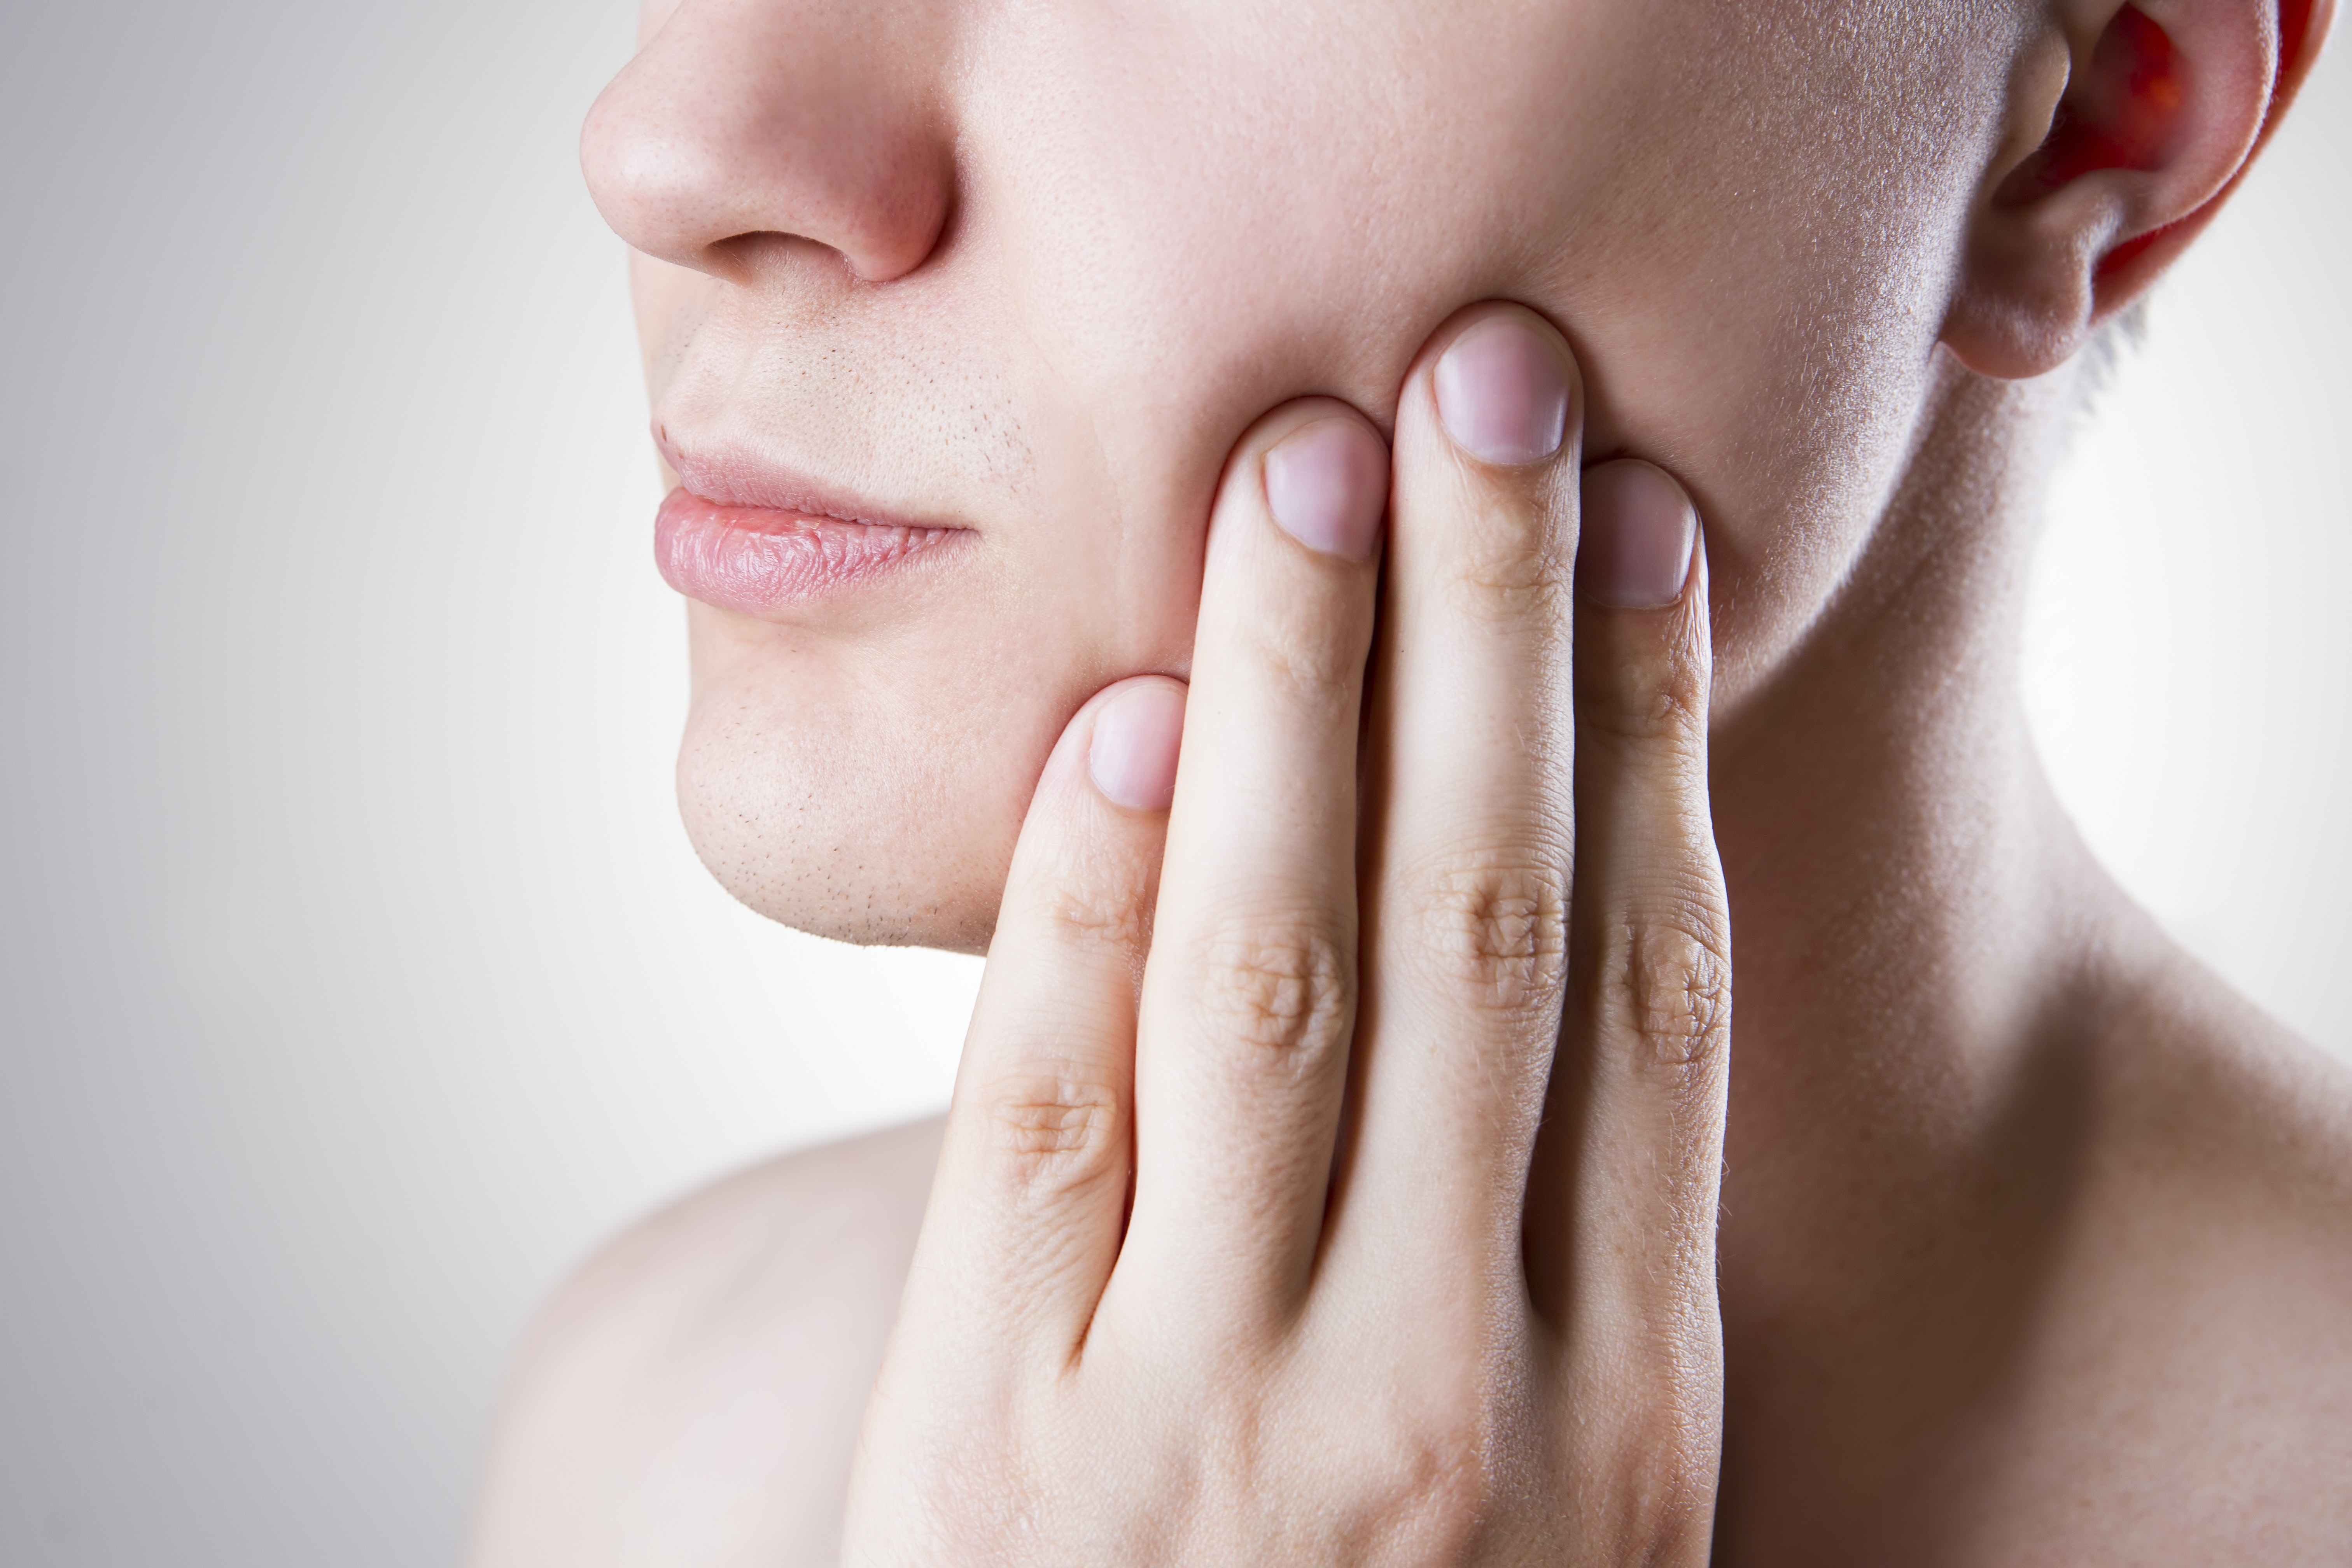 An image depicting a person suffering from pain in the lower pre-molar symptoms